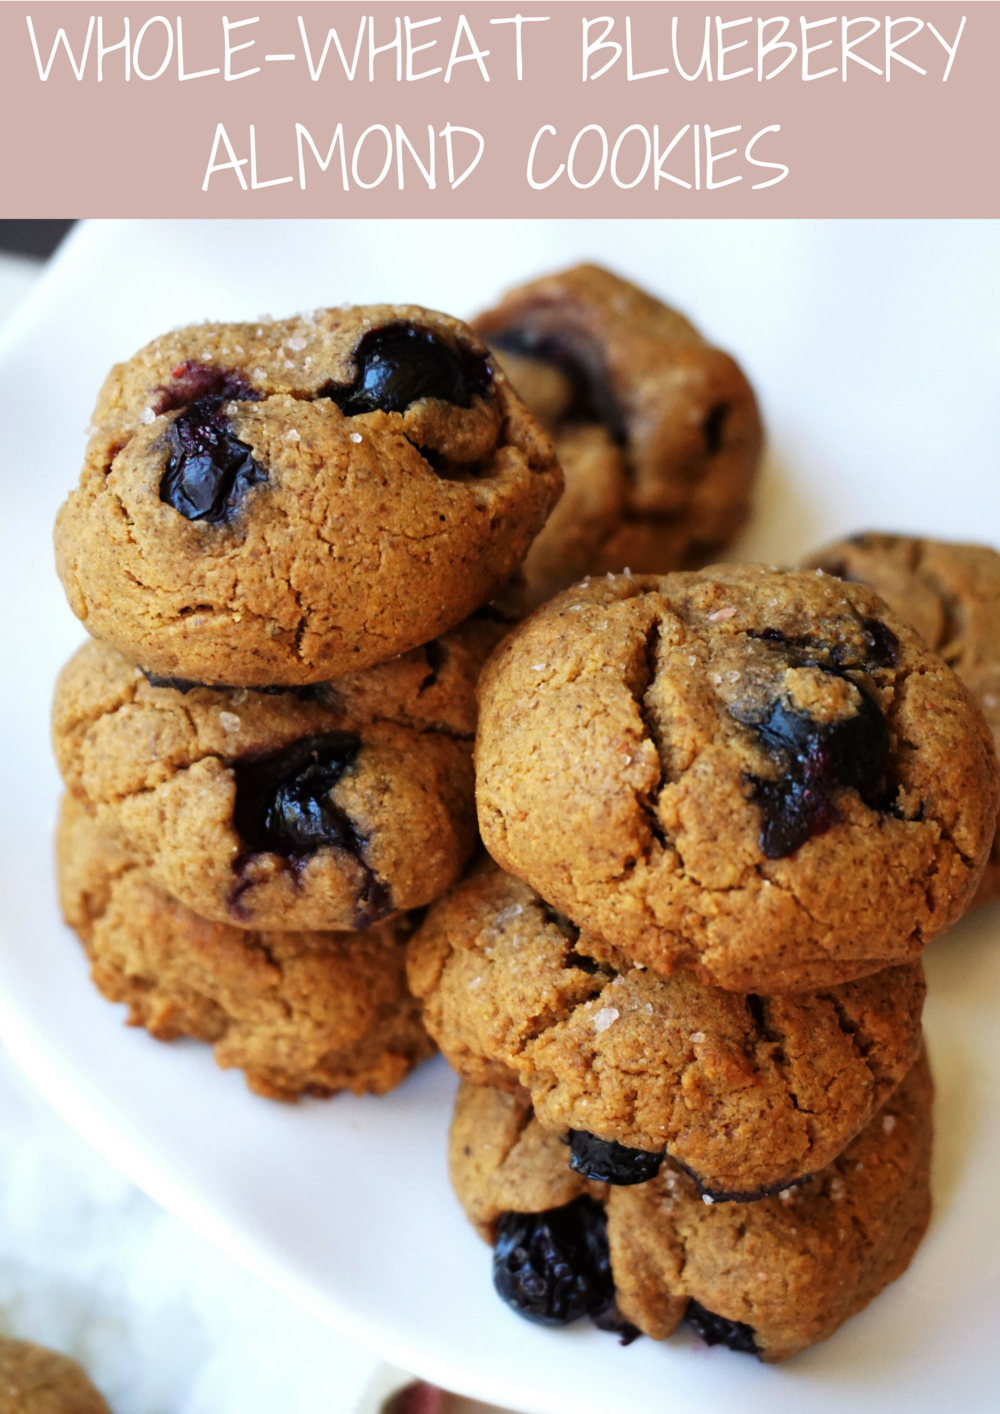 Whole-Wheat Blueberry Almond Cookies